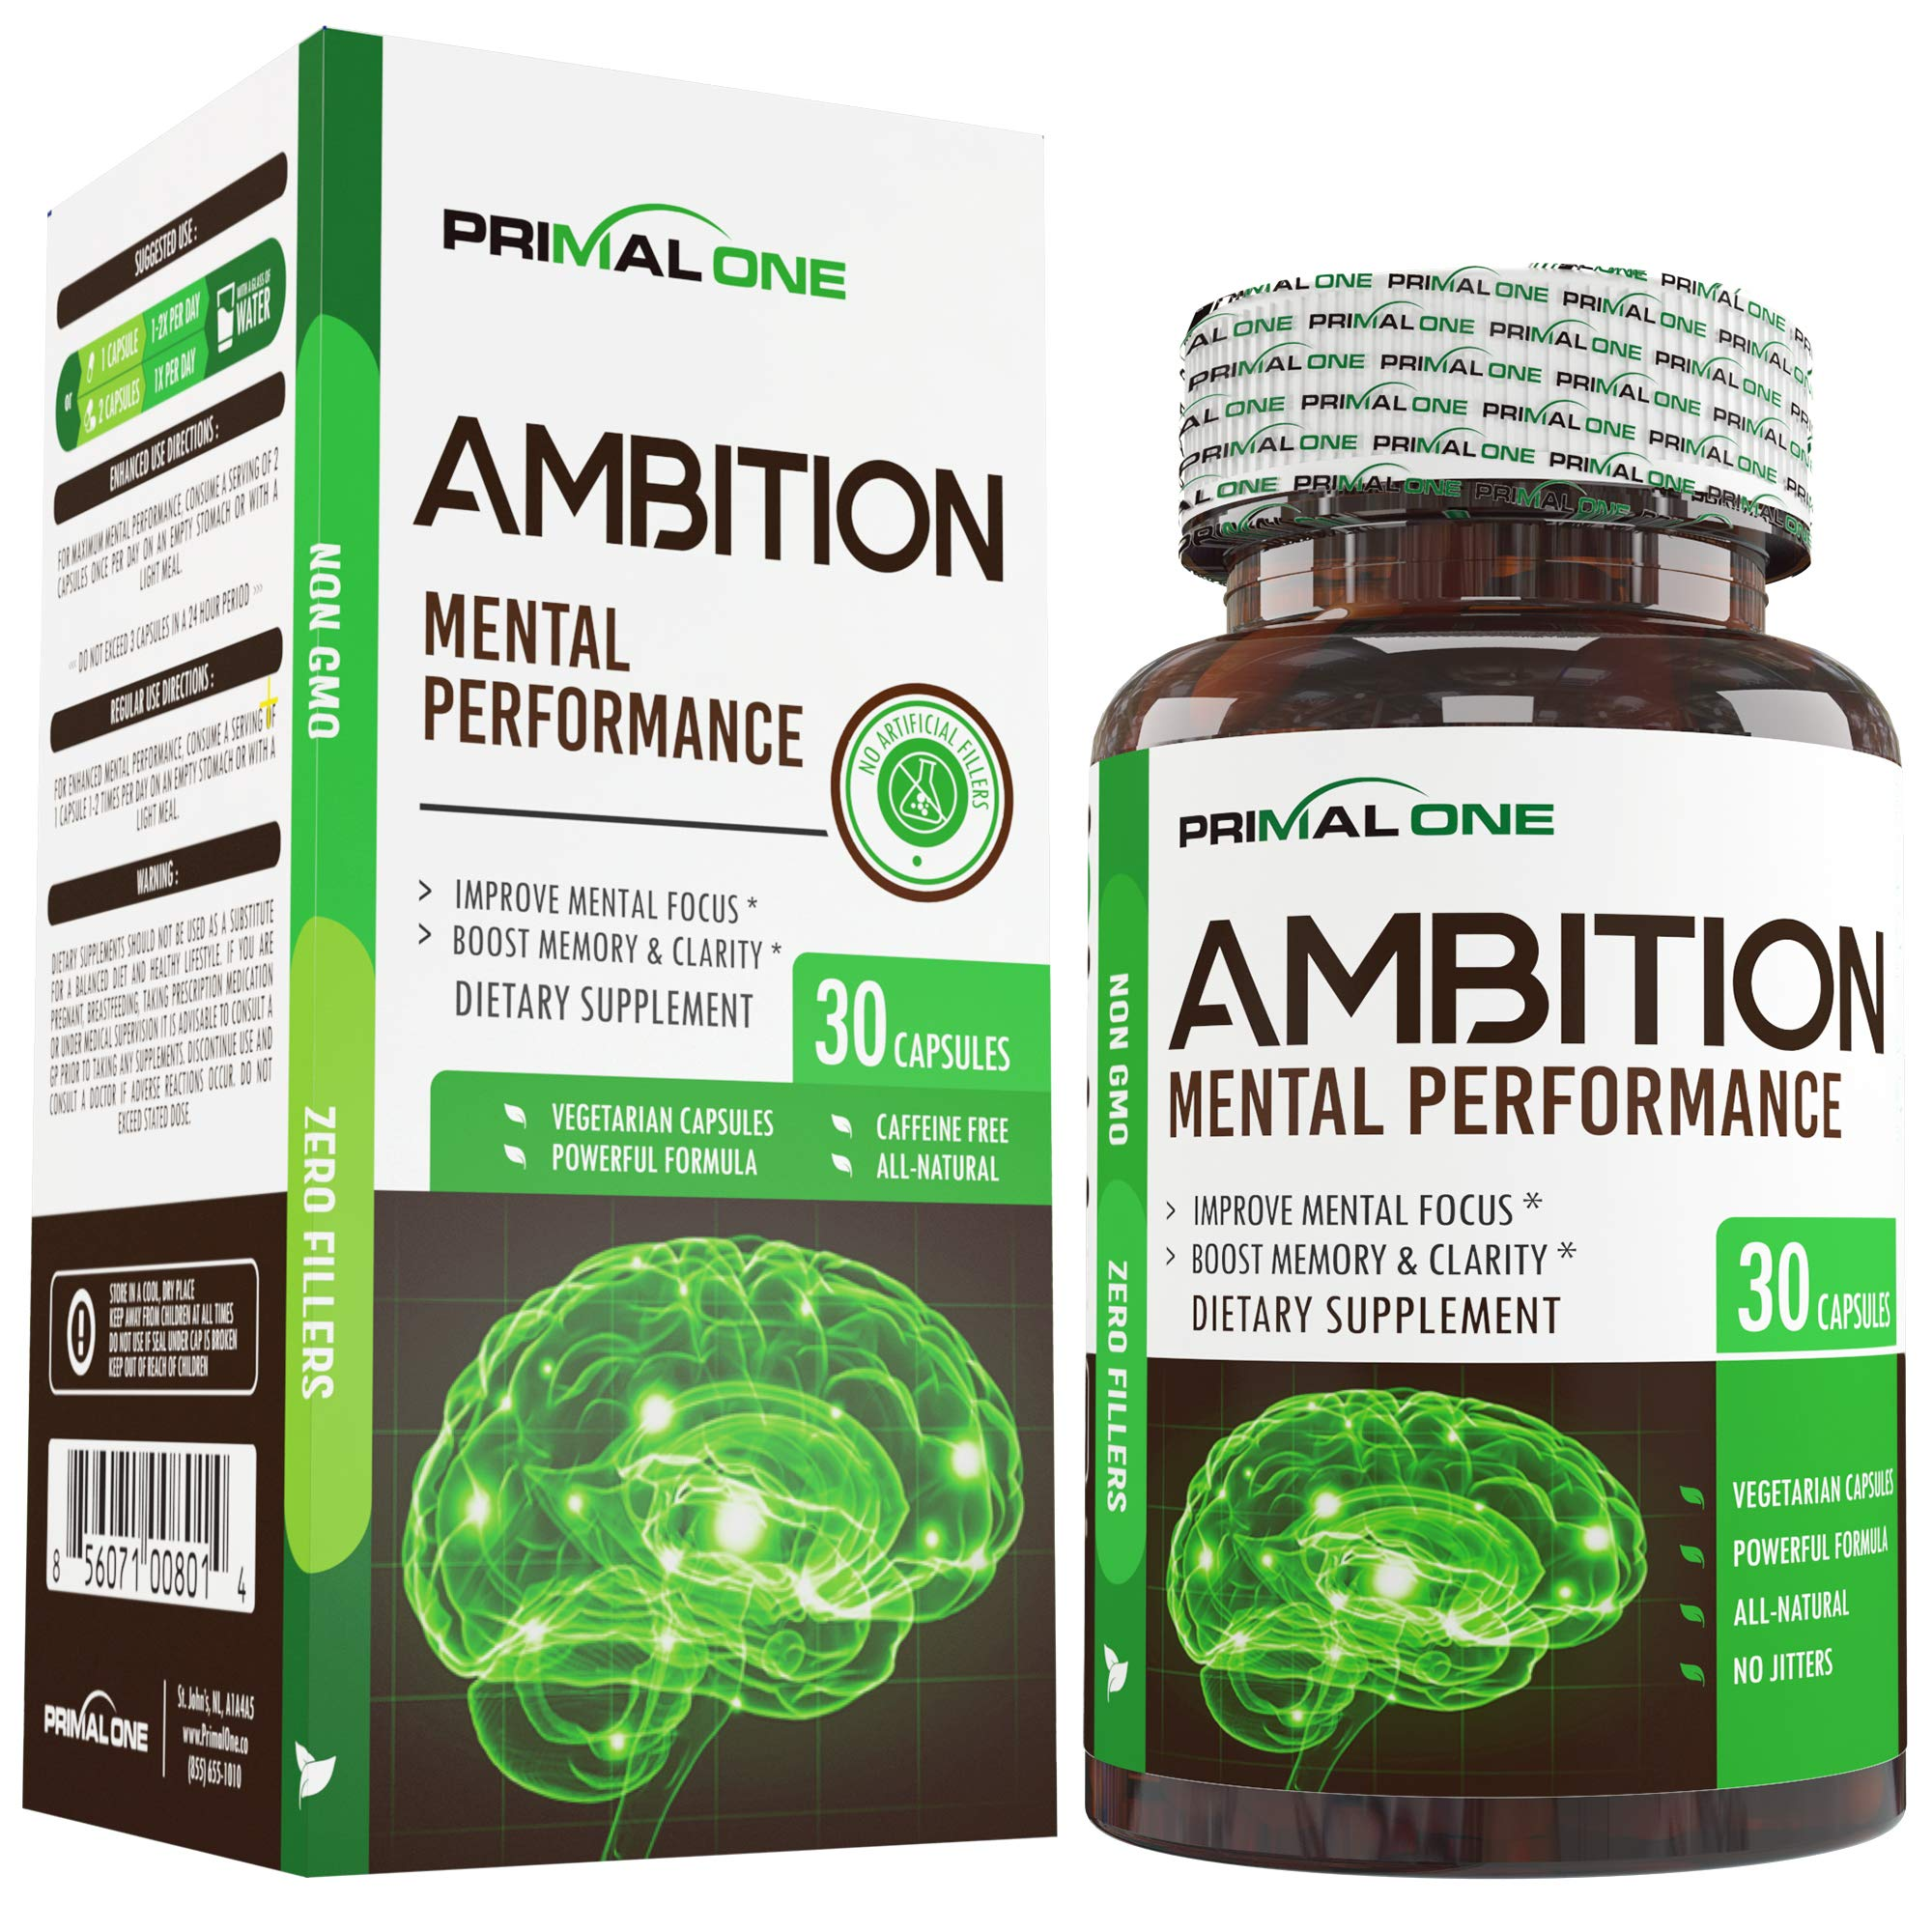 Ambition Nootropic Brain Booster Supplement - Enhance Focus, Boost Memory & Clarity - Achieve Peak Mental Performance w/CDP Choline, Neurofactor, More - 30 Natural Veggie Pills by Primal One (Image #1)